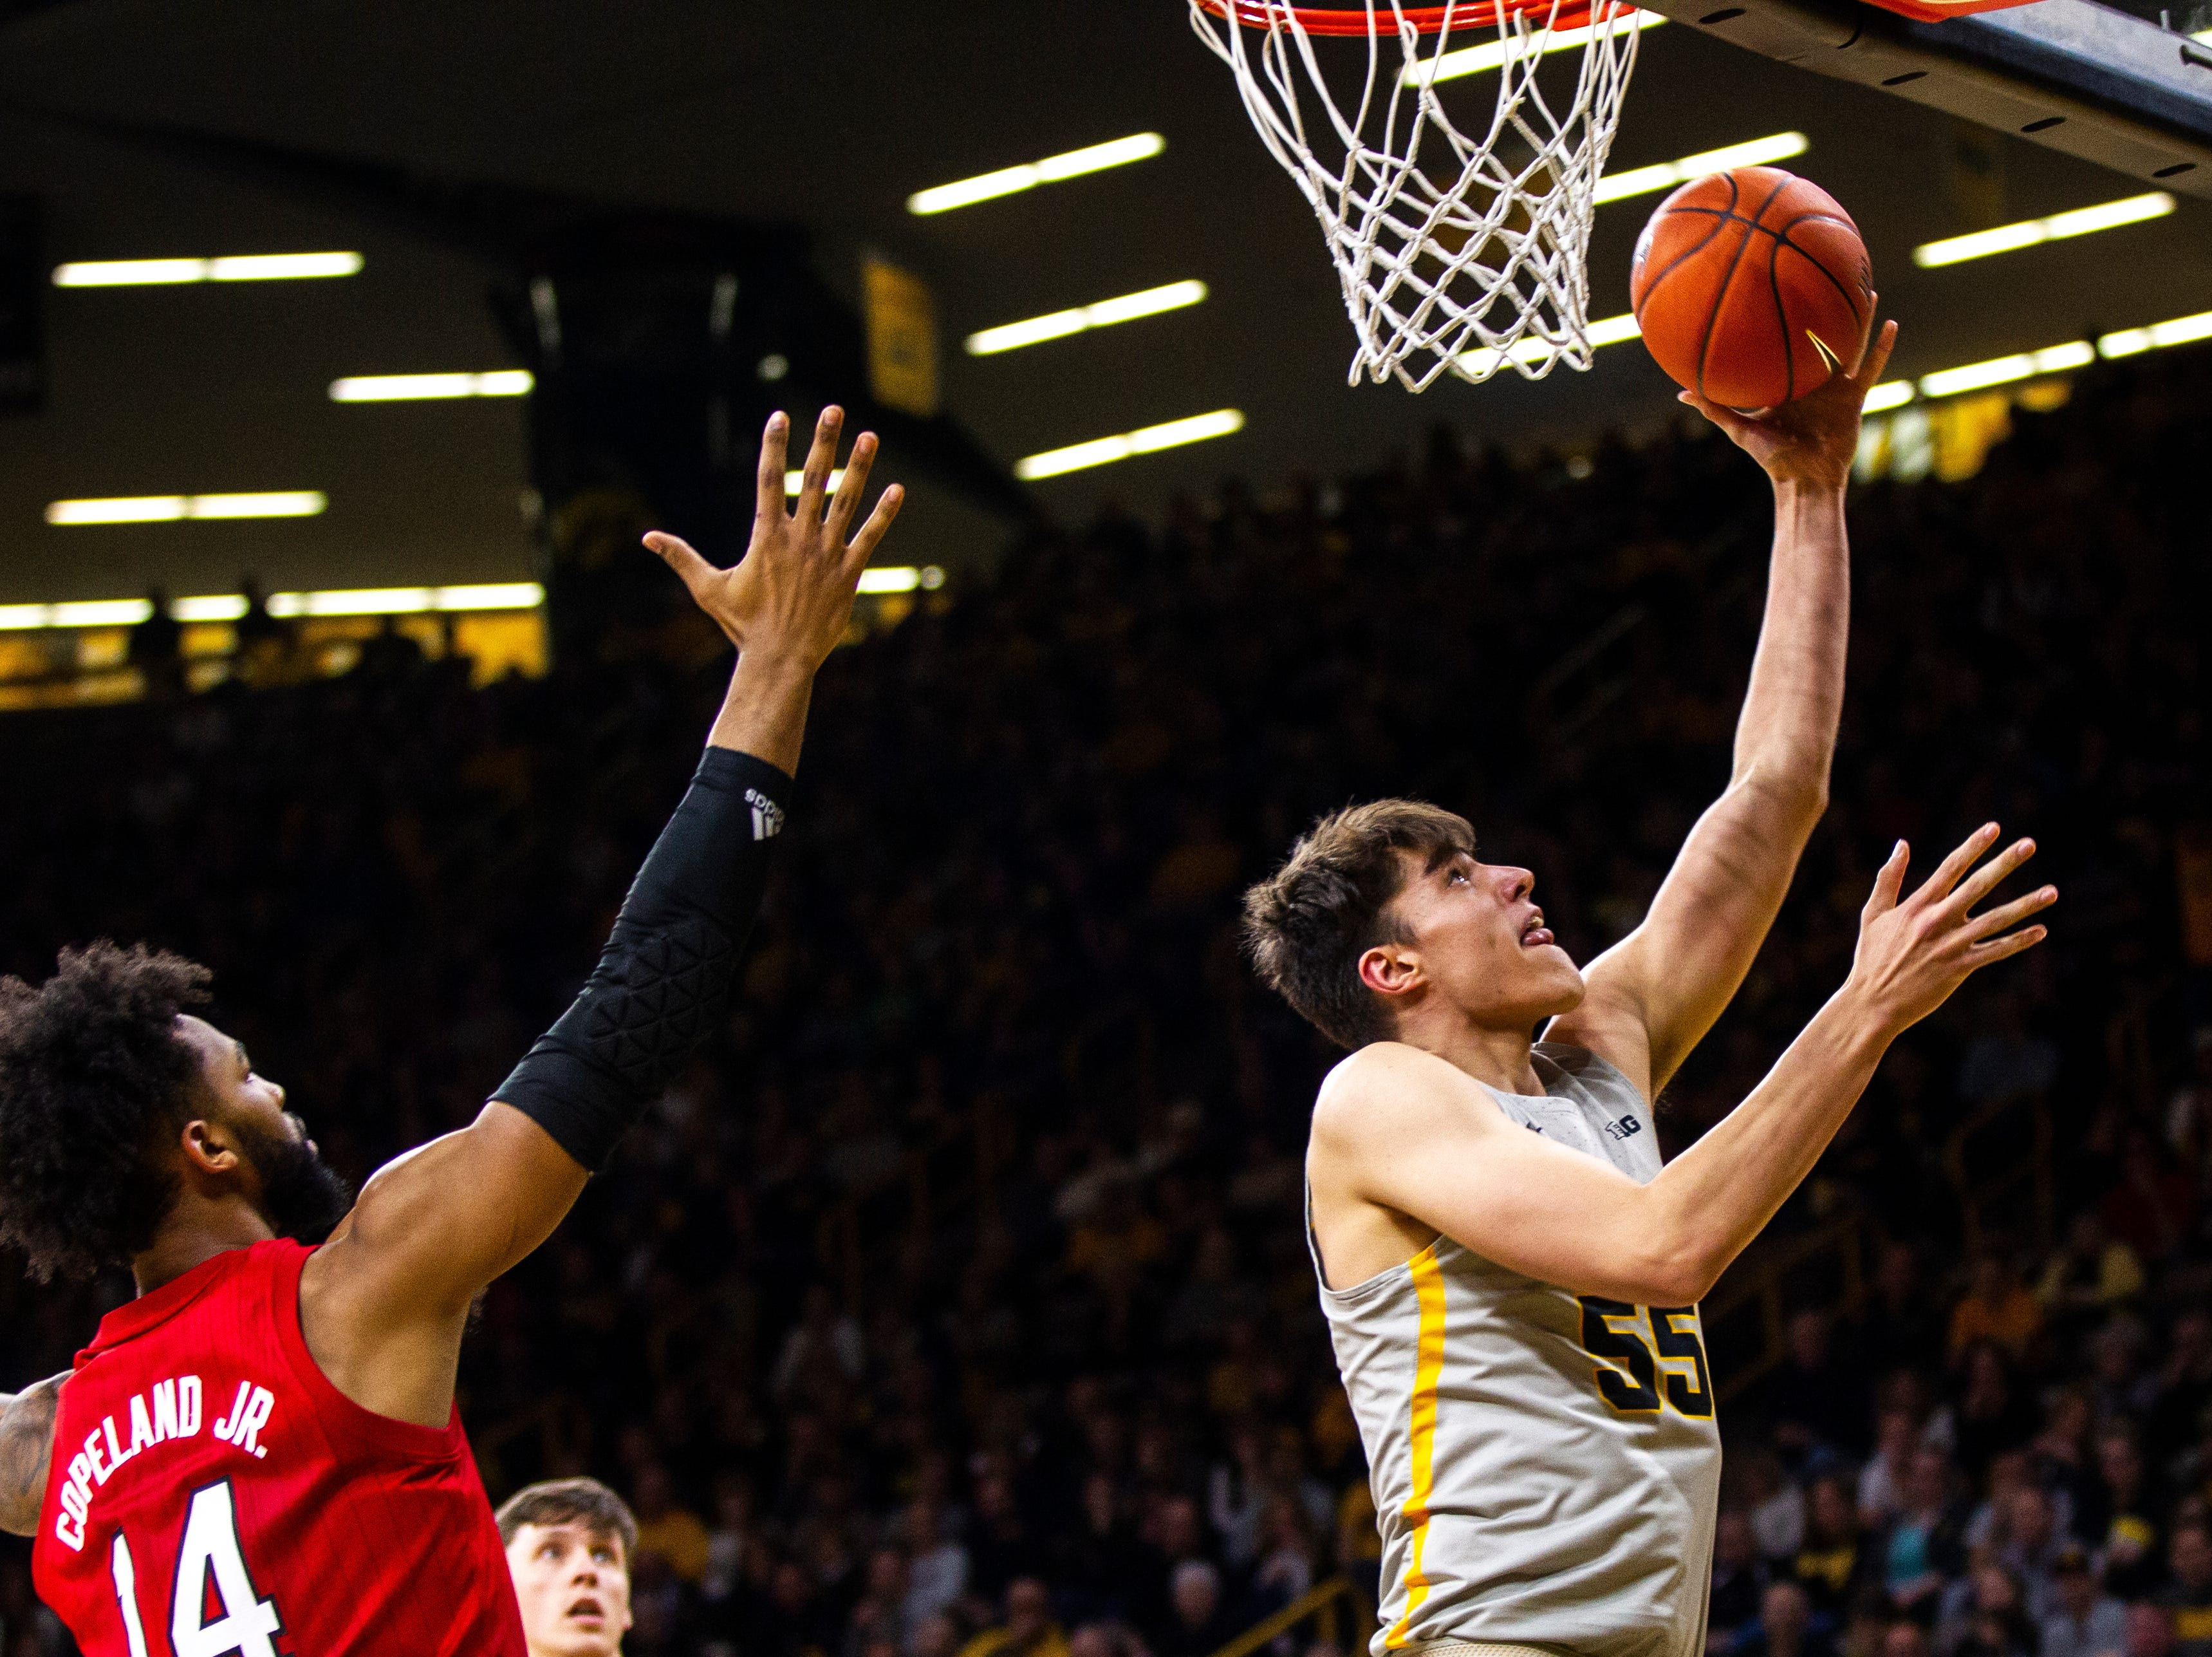 Iowa forward Luka Garza (55) makes a layup during a NCAA Big Ten Conference men's basketball game on Sunday, Jan. 6, 2019, at the Carver-Hawkeye Arena in Iowa City, Iowa.